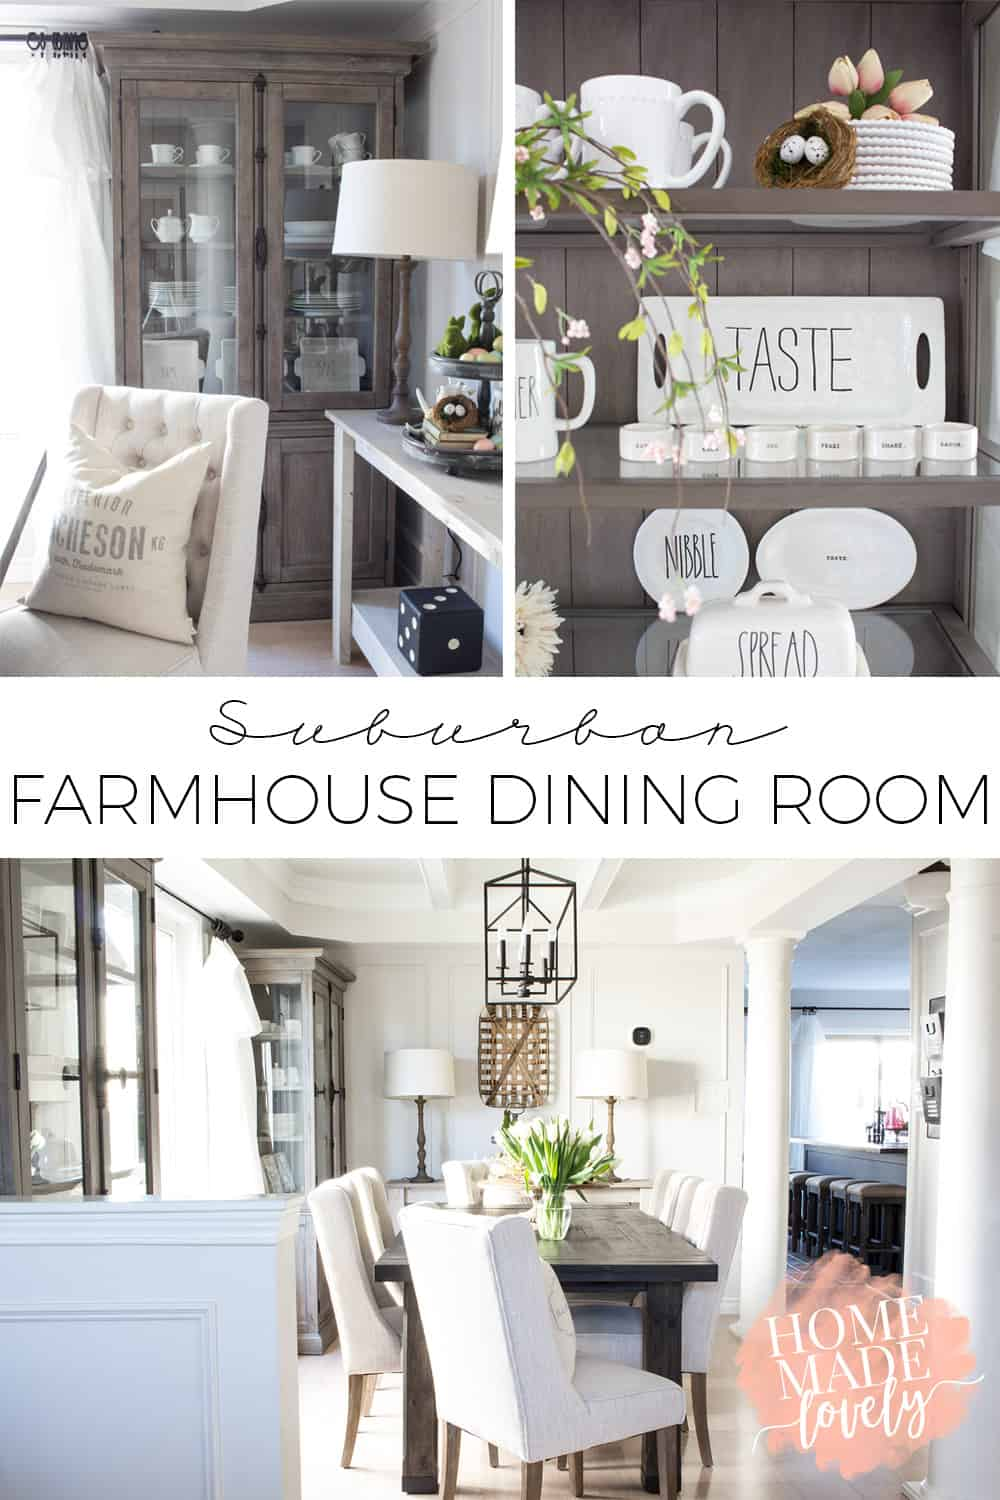 A few weeks ago we shared the mood board and plan for our suburban farmhouse dining room makeover. Today we're thrilled to share the reveal with you!